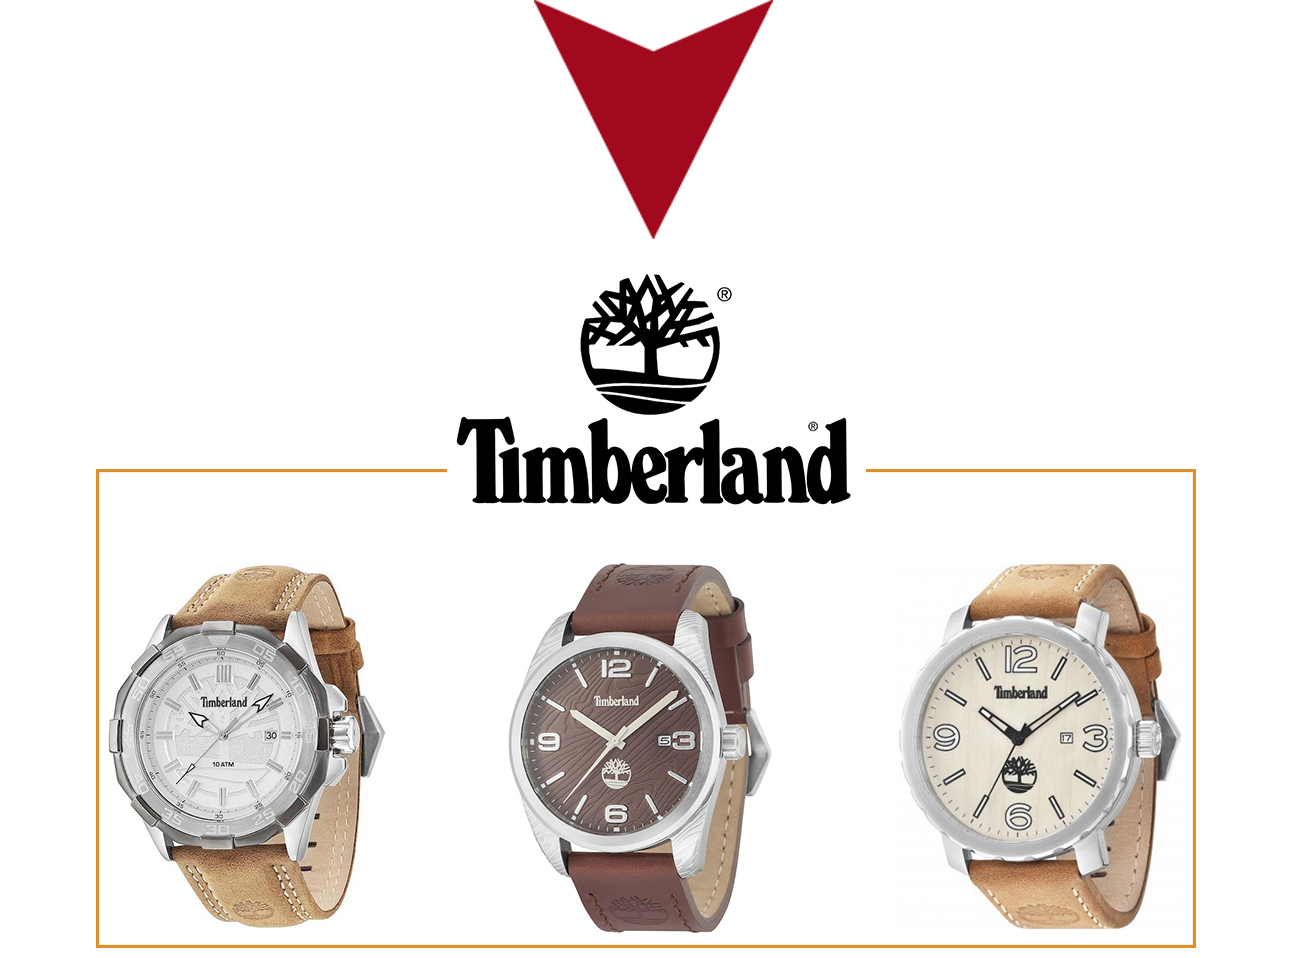 Timberlandwatches